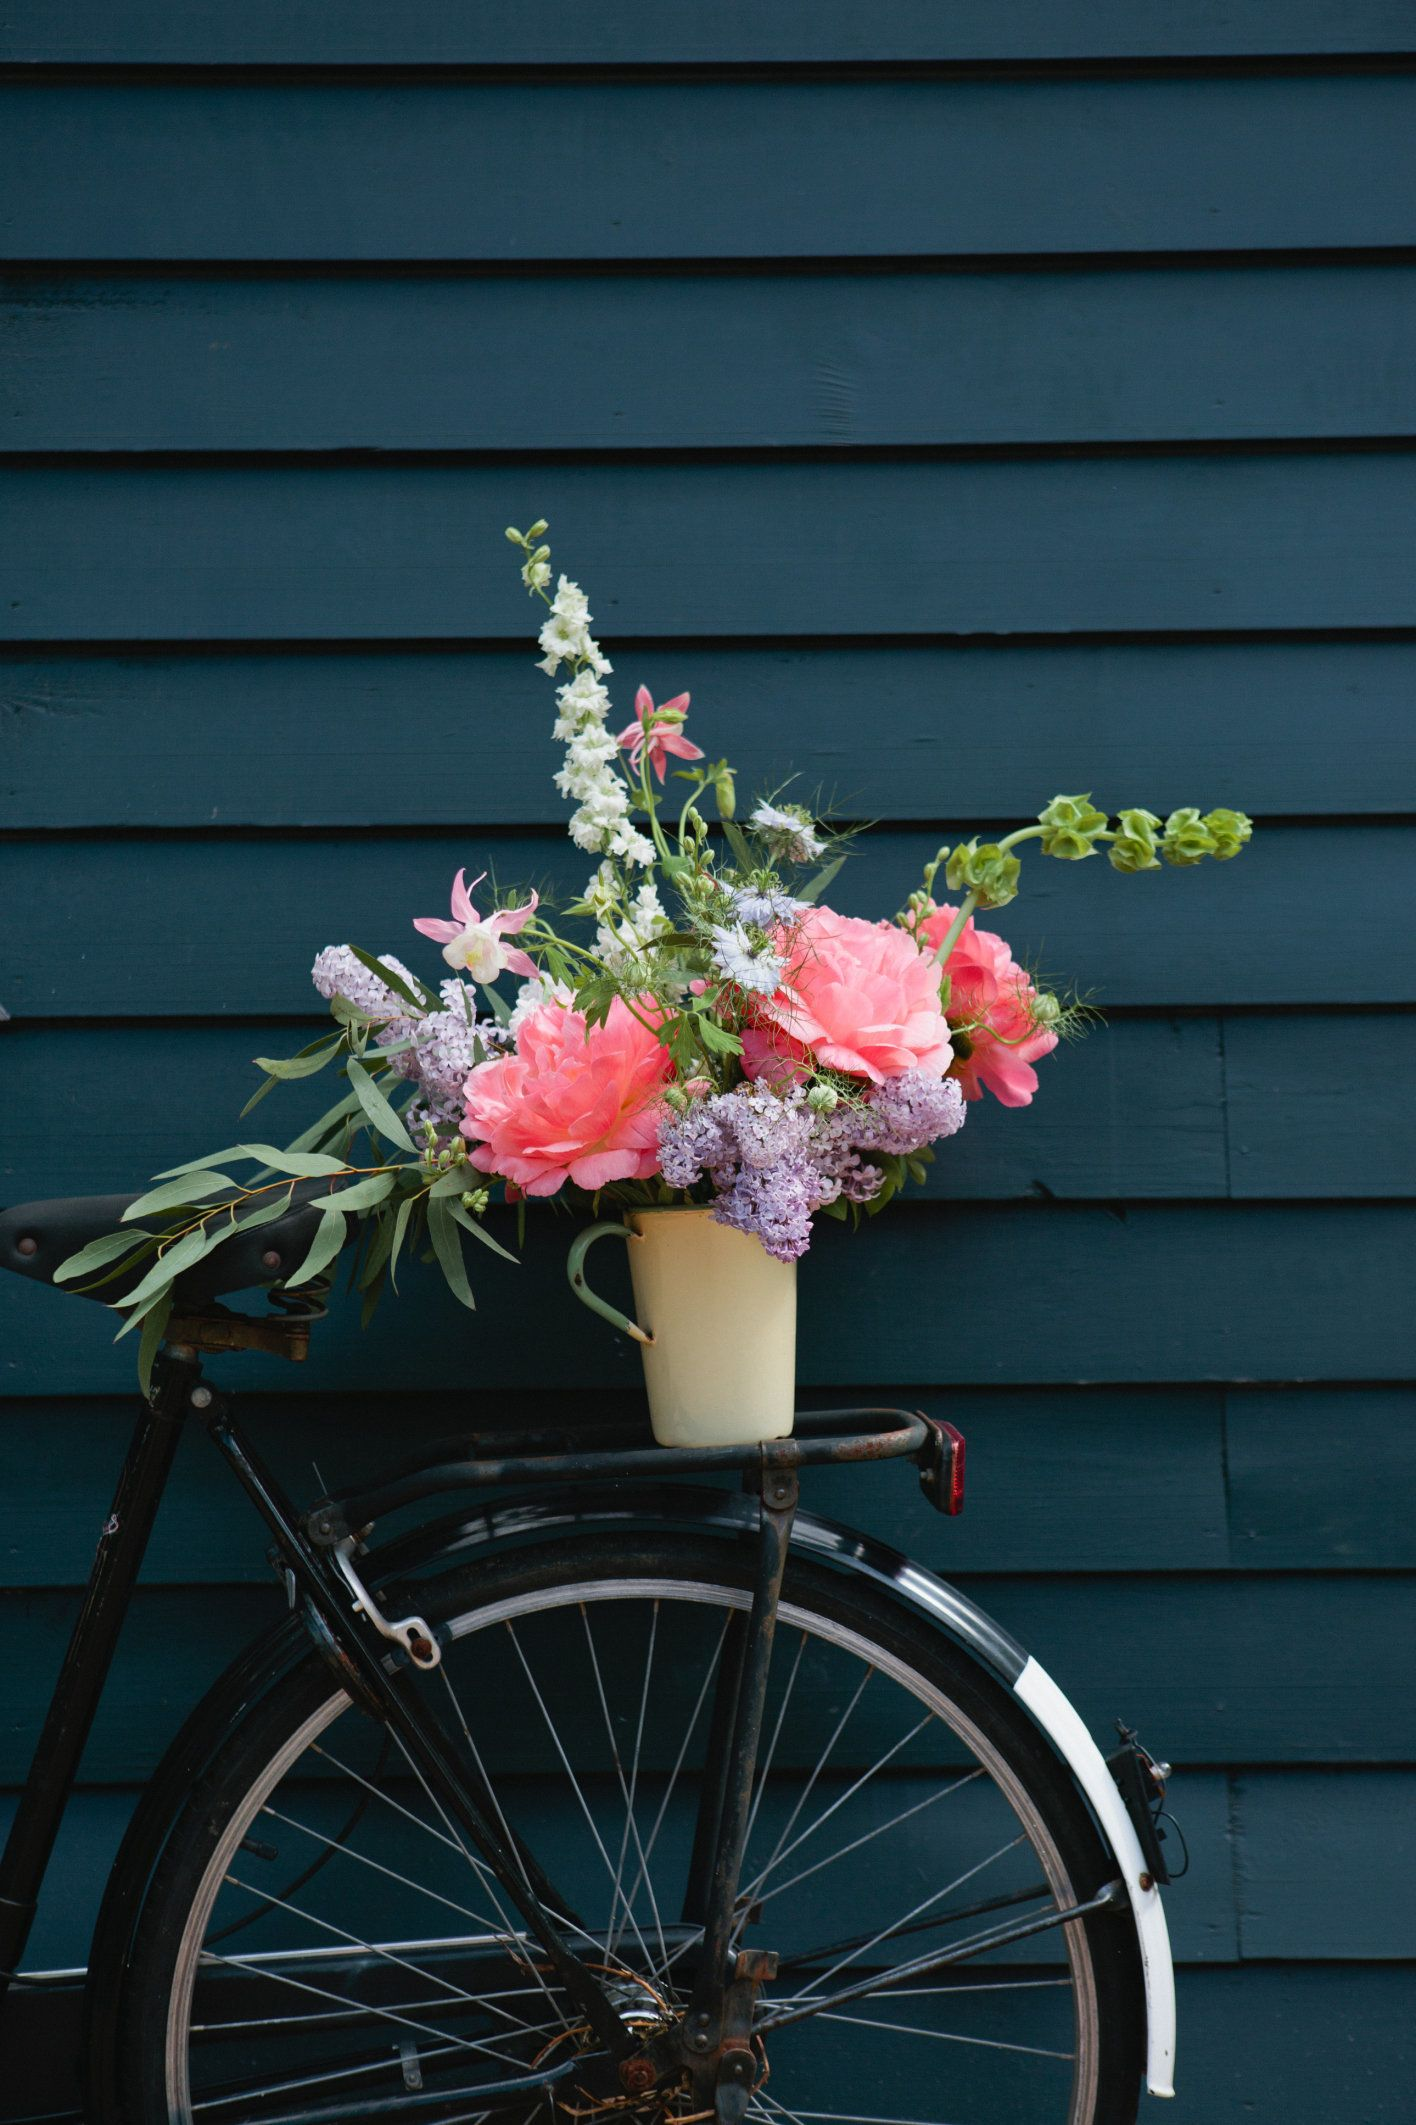 A beautiful arrangement of flowers on the back of a vintage black Dutch bicycle.